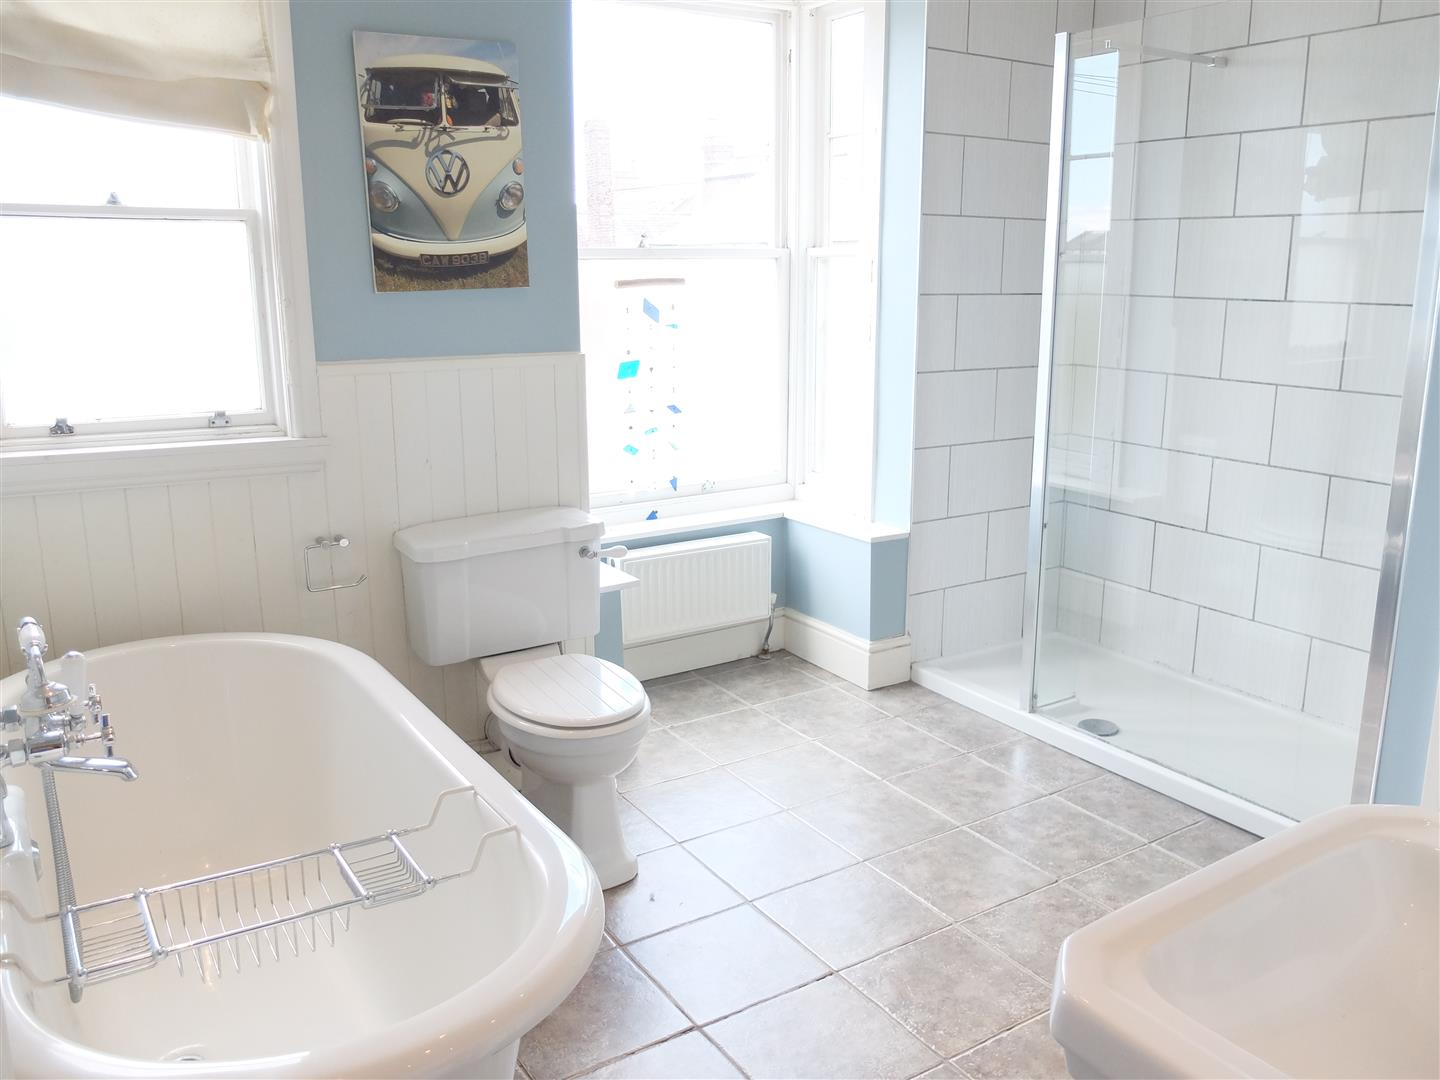 5 Bedrooms House - Terraced For Sale 40 Victoria Place Carlisle